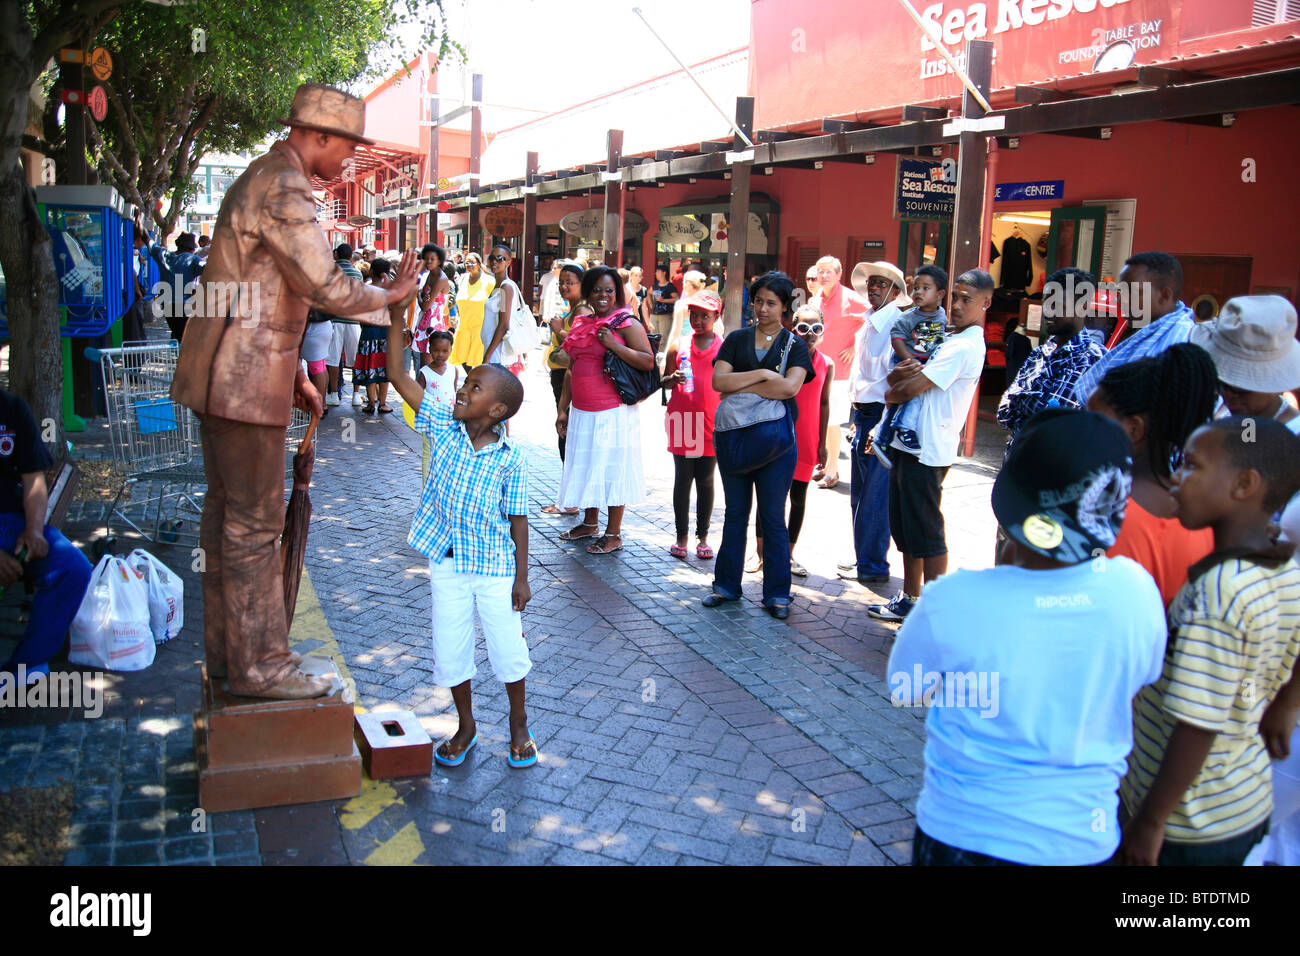 Tourists at the Victoria and Alfred Waterfront watching a street mime artist - Stock Image